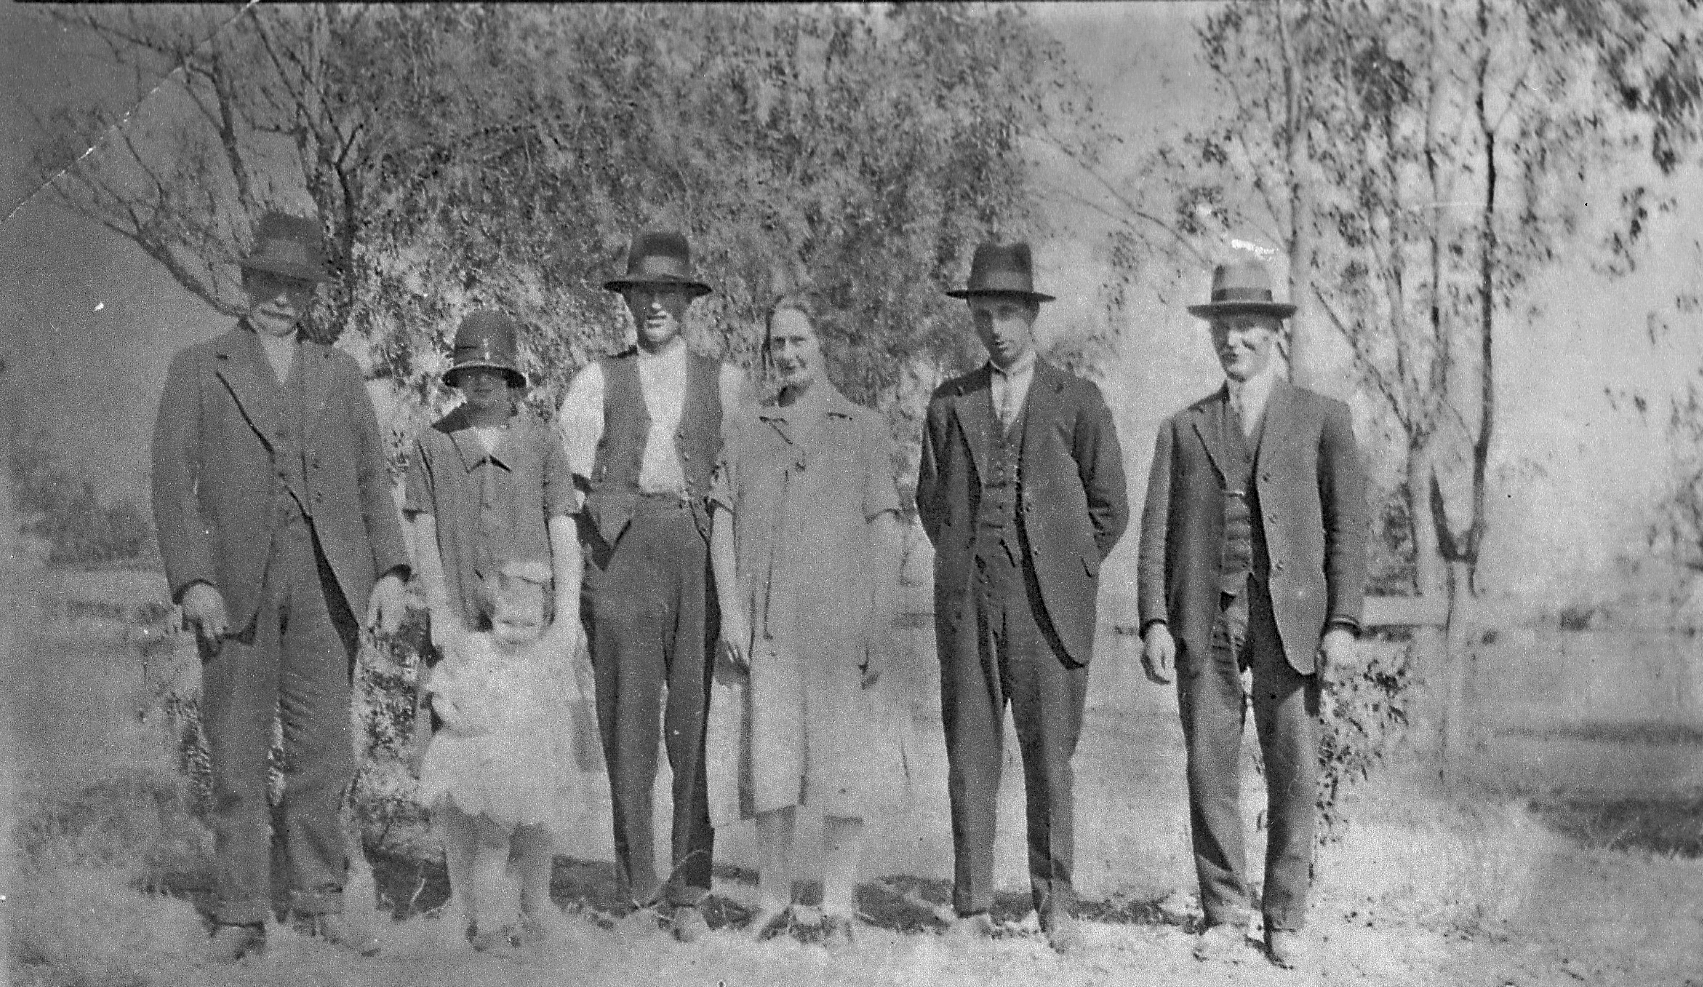 The Hedley Family: John [an original settler], Kate & Mary [child in front], Frank, Rose [Frank's wife], Mick and Jack.